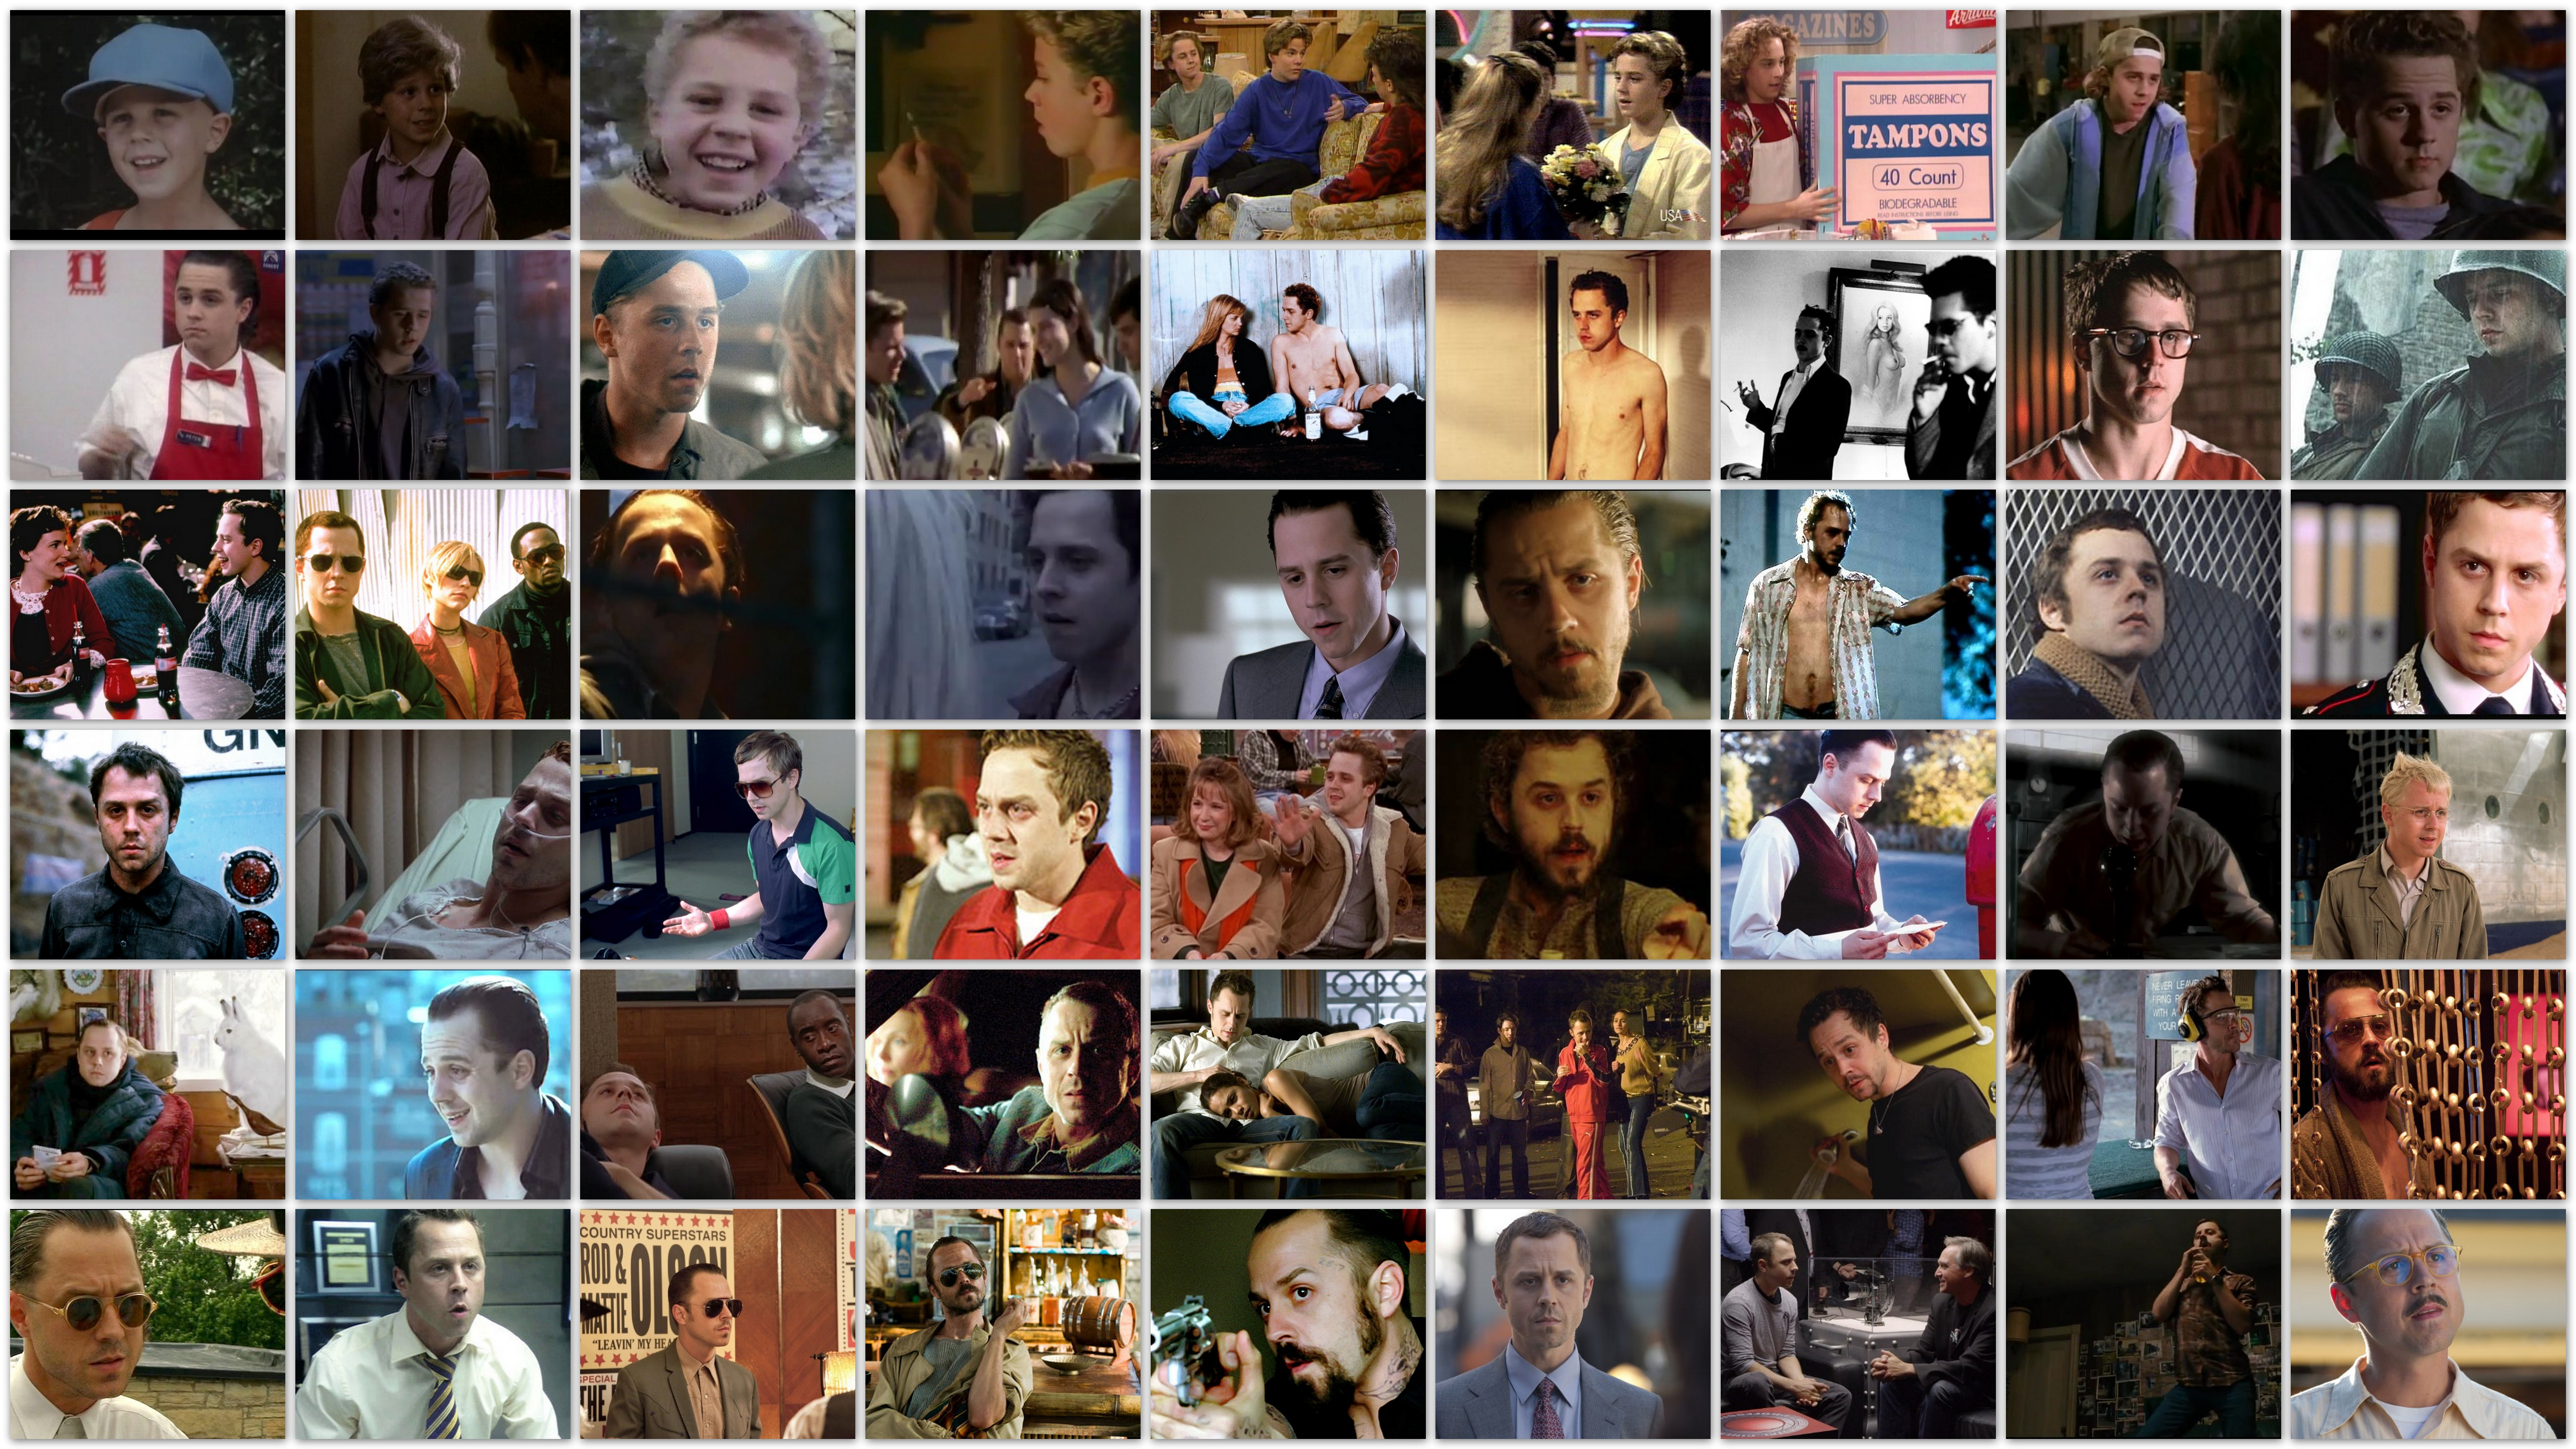 Overview of the roles of actor Giovanni Ribisi in movies and tv